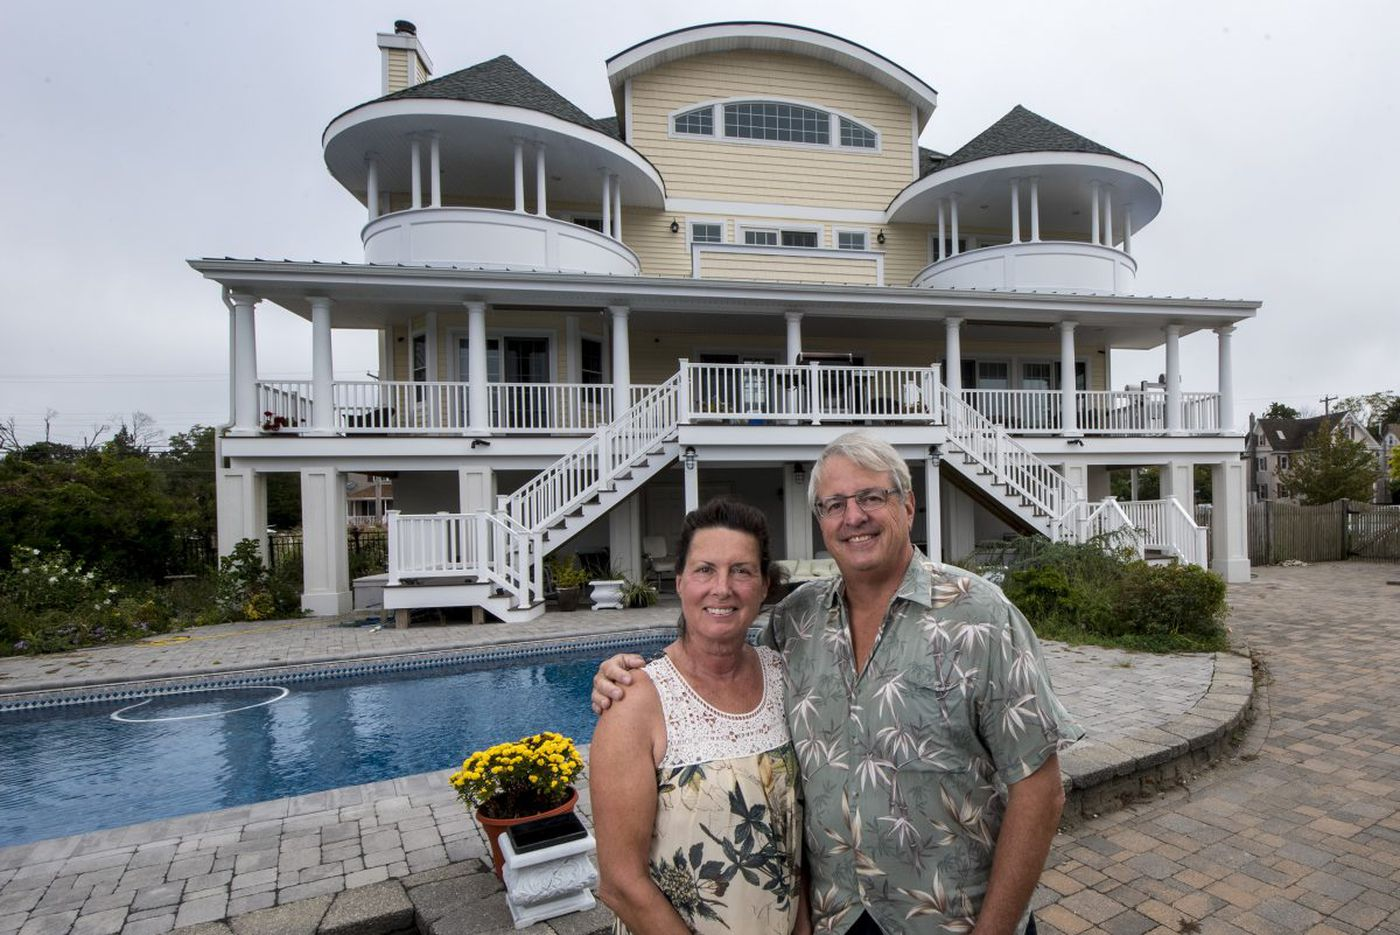 How Hurricane Sandy became steroids for Jersey Shore development